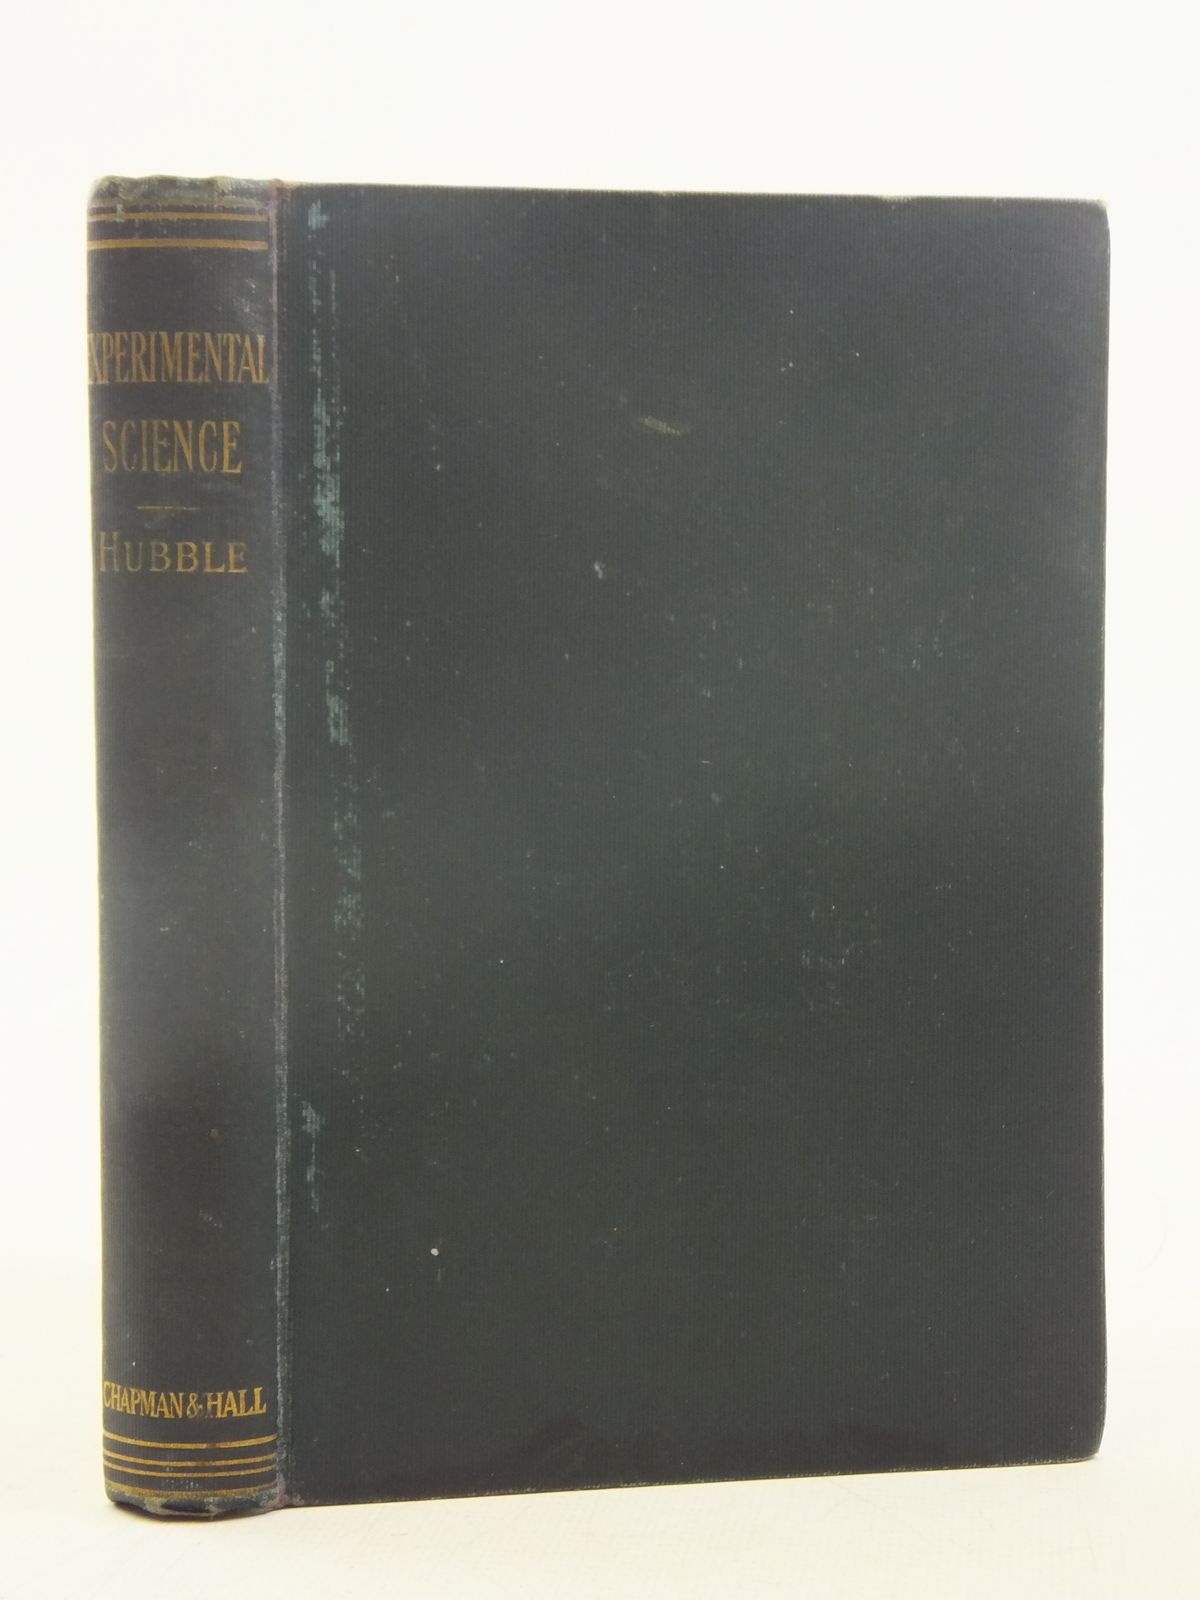 Photo of EXPERIMENTAL SCIENCE written by Hubble, Arthur published by Chapman & Hall Ltd (STOCK CODE: 1606792)  for sale by Stella & Rose's Books